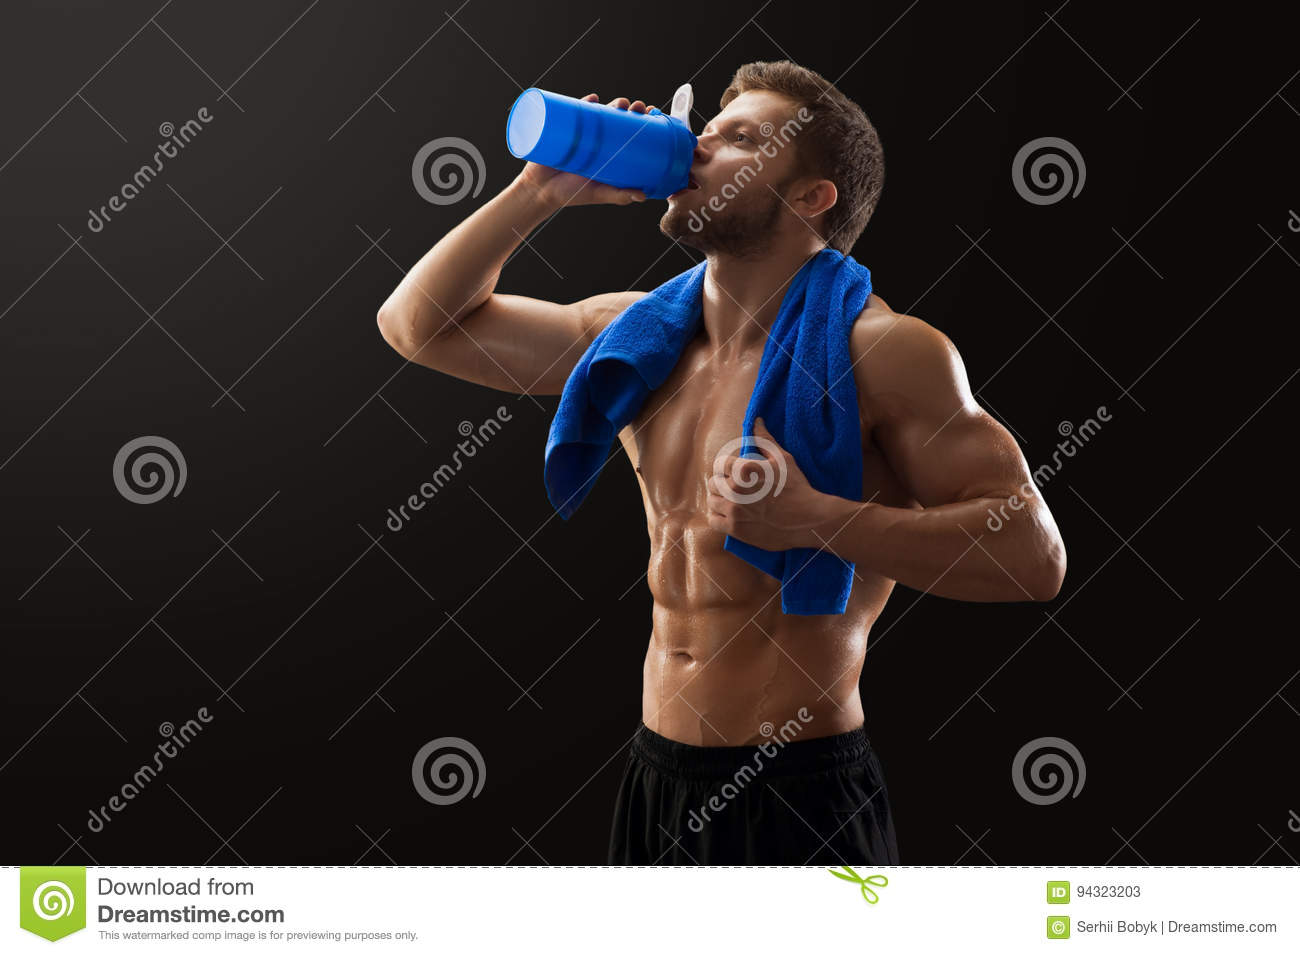 Muscular young man with a towel drinking water after exercising at the gym  bodybuilding crossfit training sport health motivation determination  athletics. 3569a78d62